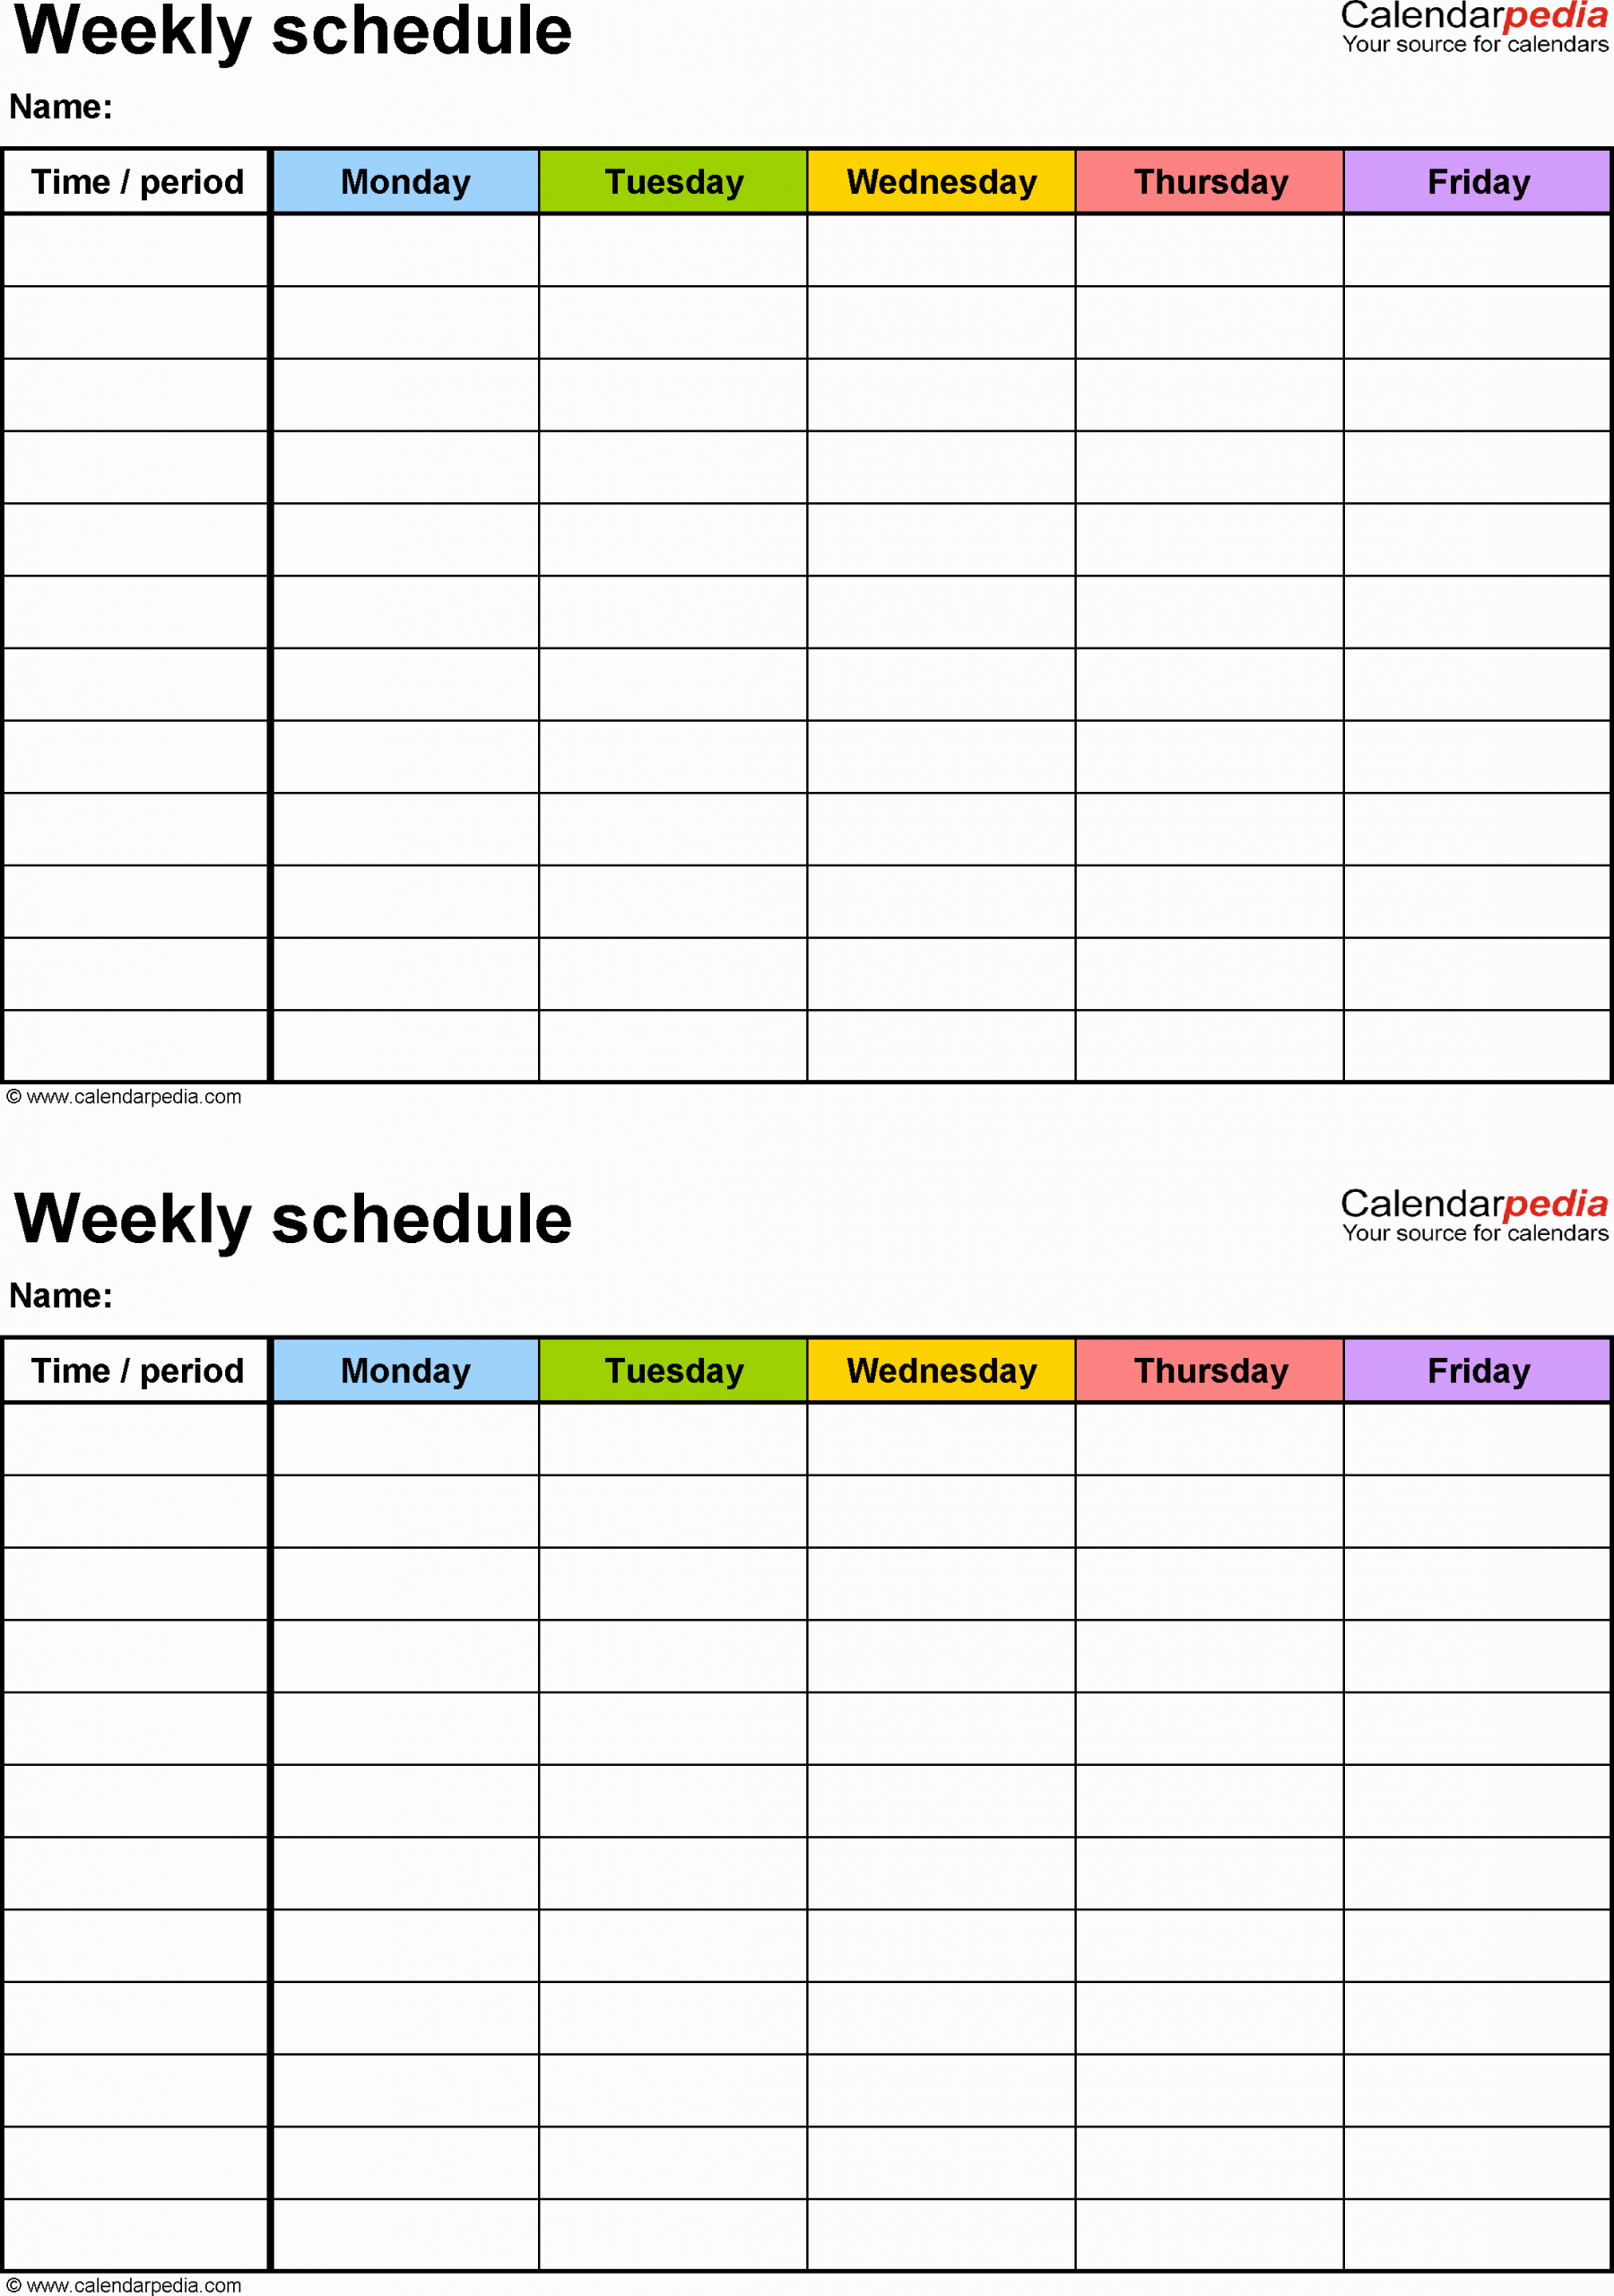 Class Schedule Template Word Unique Free Weekly Schedule Templates for Word 18 Templates